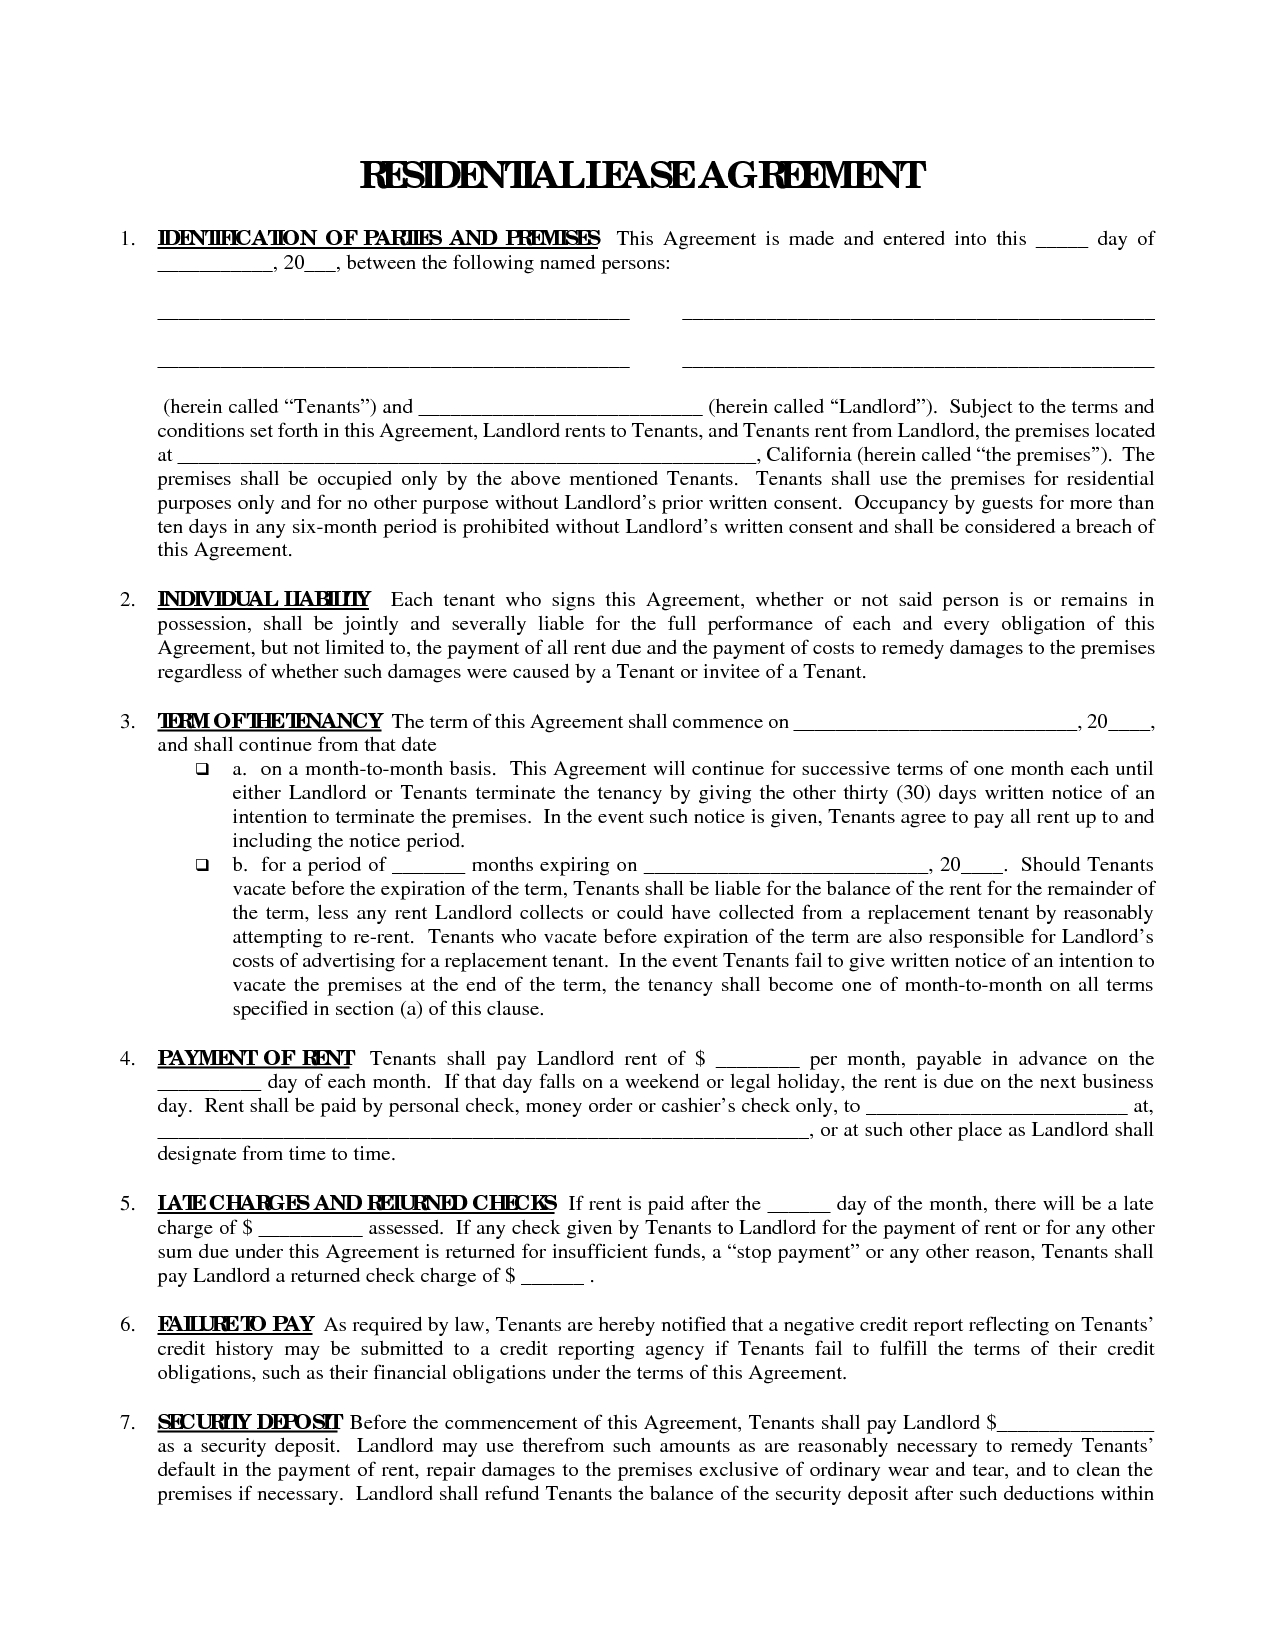 Printable Residential Free House Lease Agreement | Residential Lease - Free Printable Michigan Residential Lease Agreement